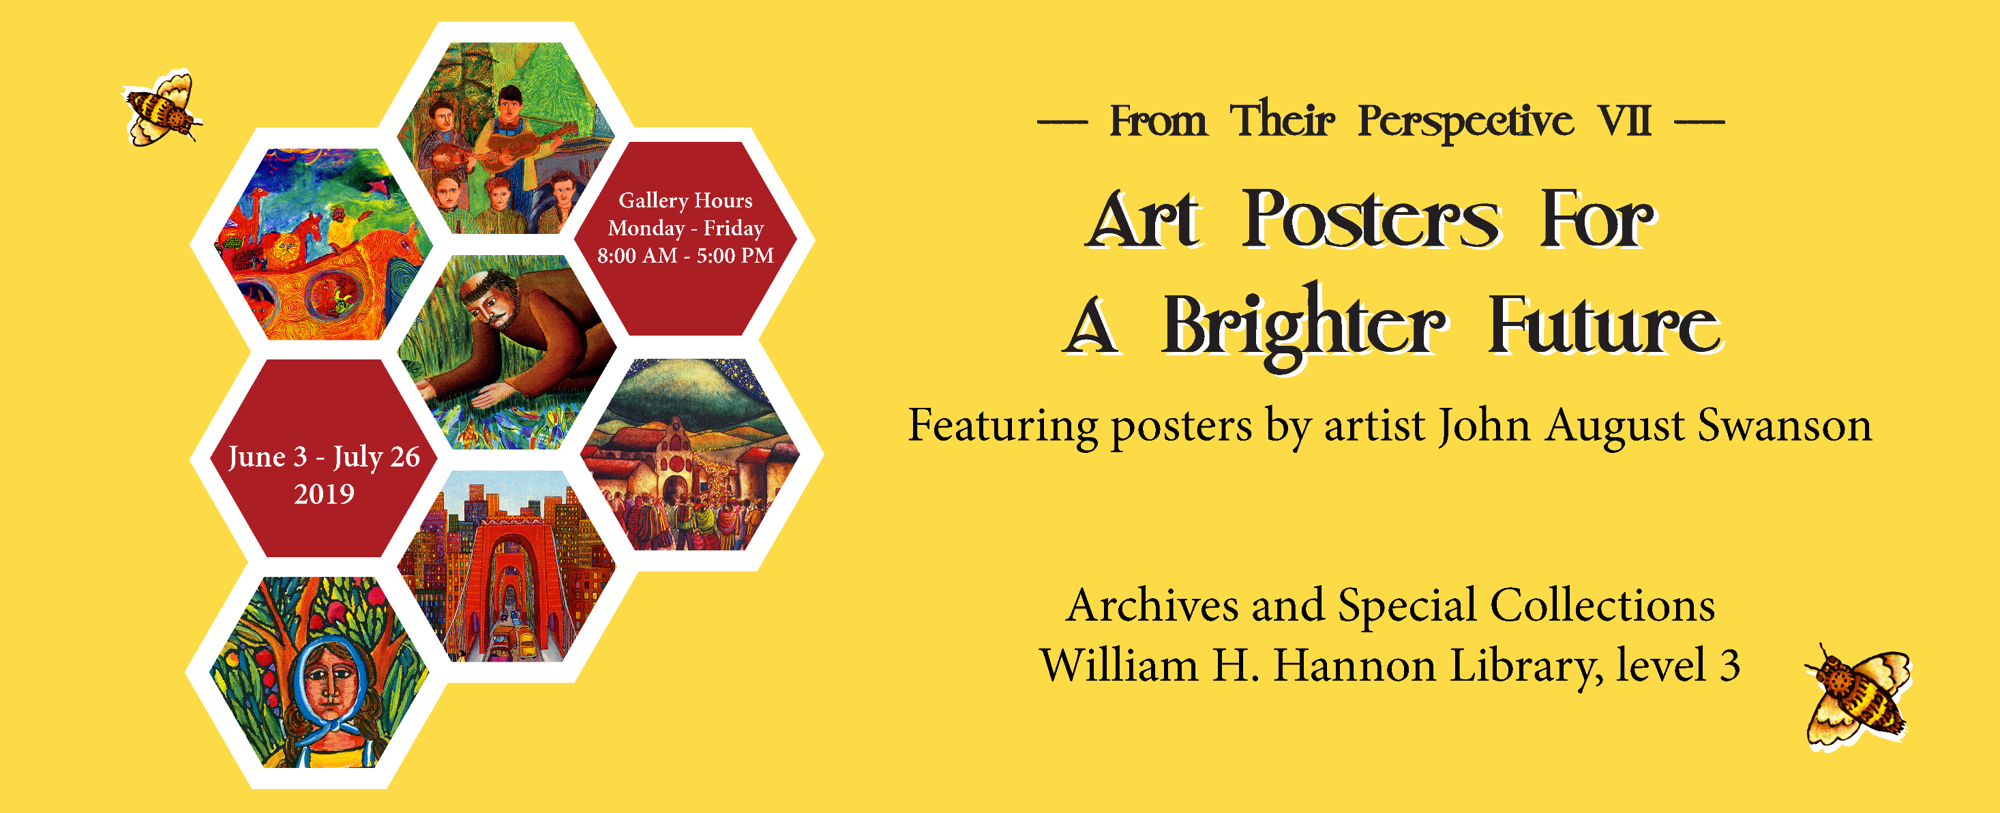 """Opening Reception for """"From Their Perspective VII: Art Posters For A Brighter Future"""""""